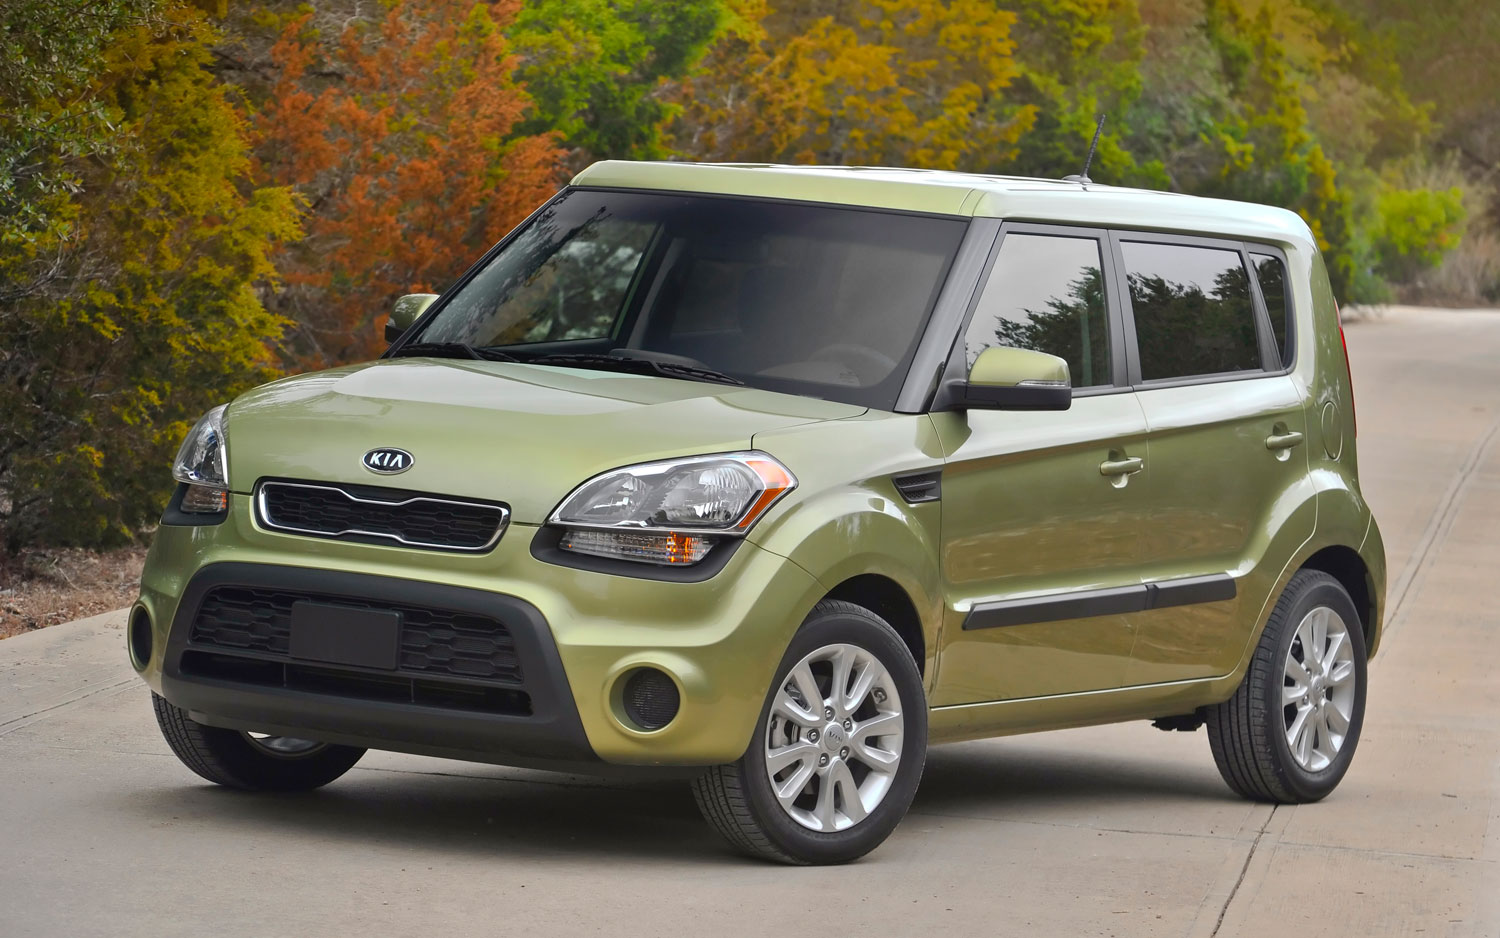 Most Wanted Cars: Kia Soul